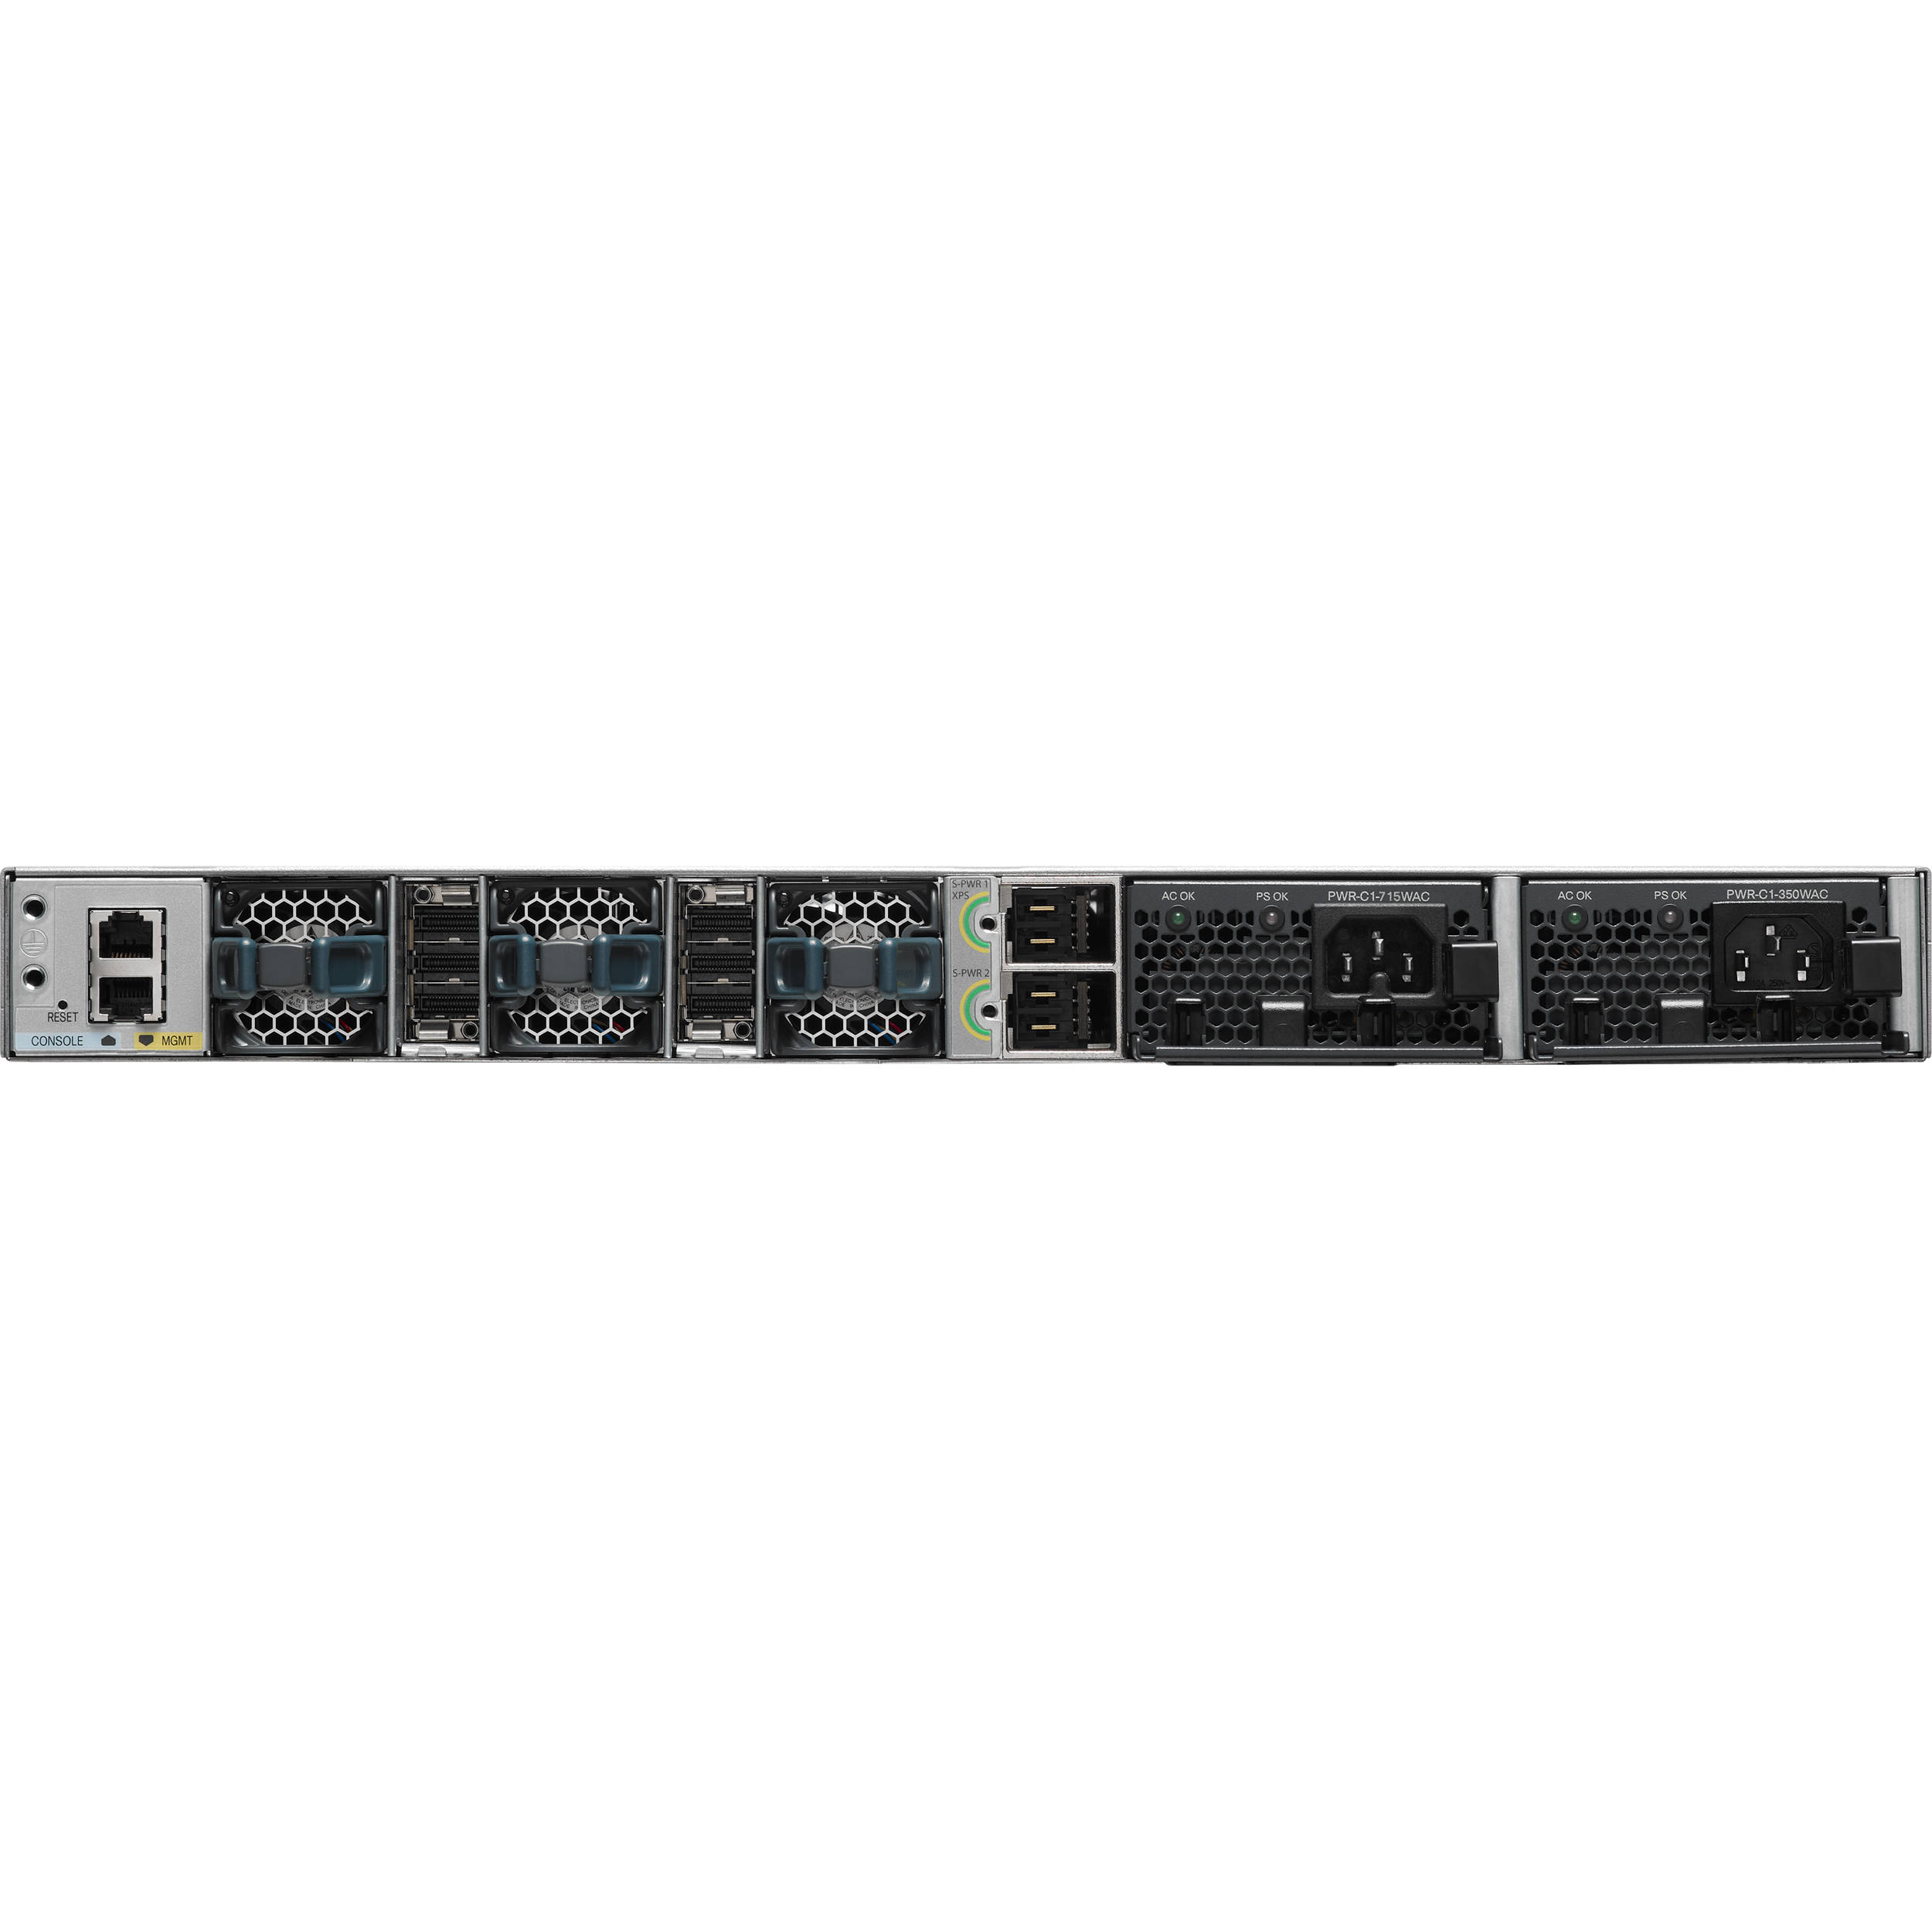 Cisco Catalyst 3850 Stackable 24-Port 10/100/1000 Gigabit Ethernet Switch  with PoE+